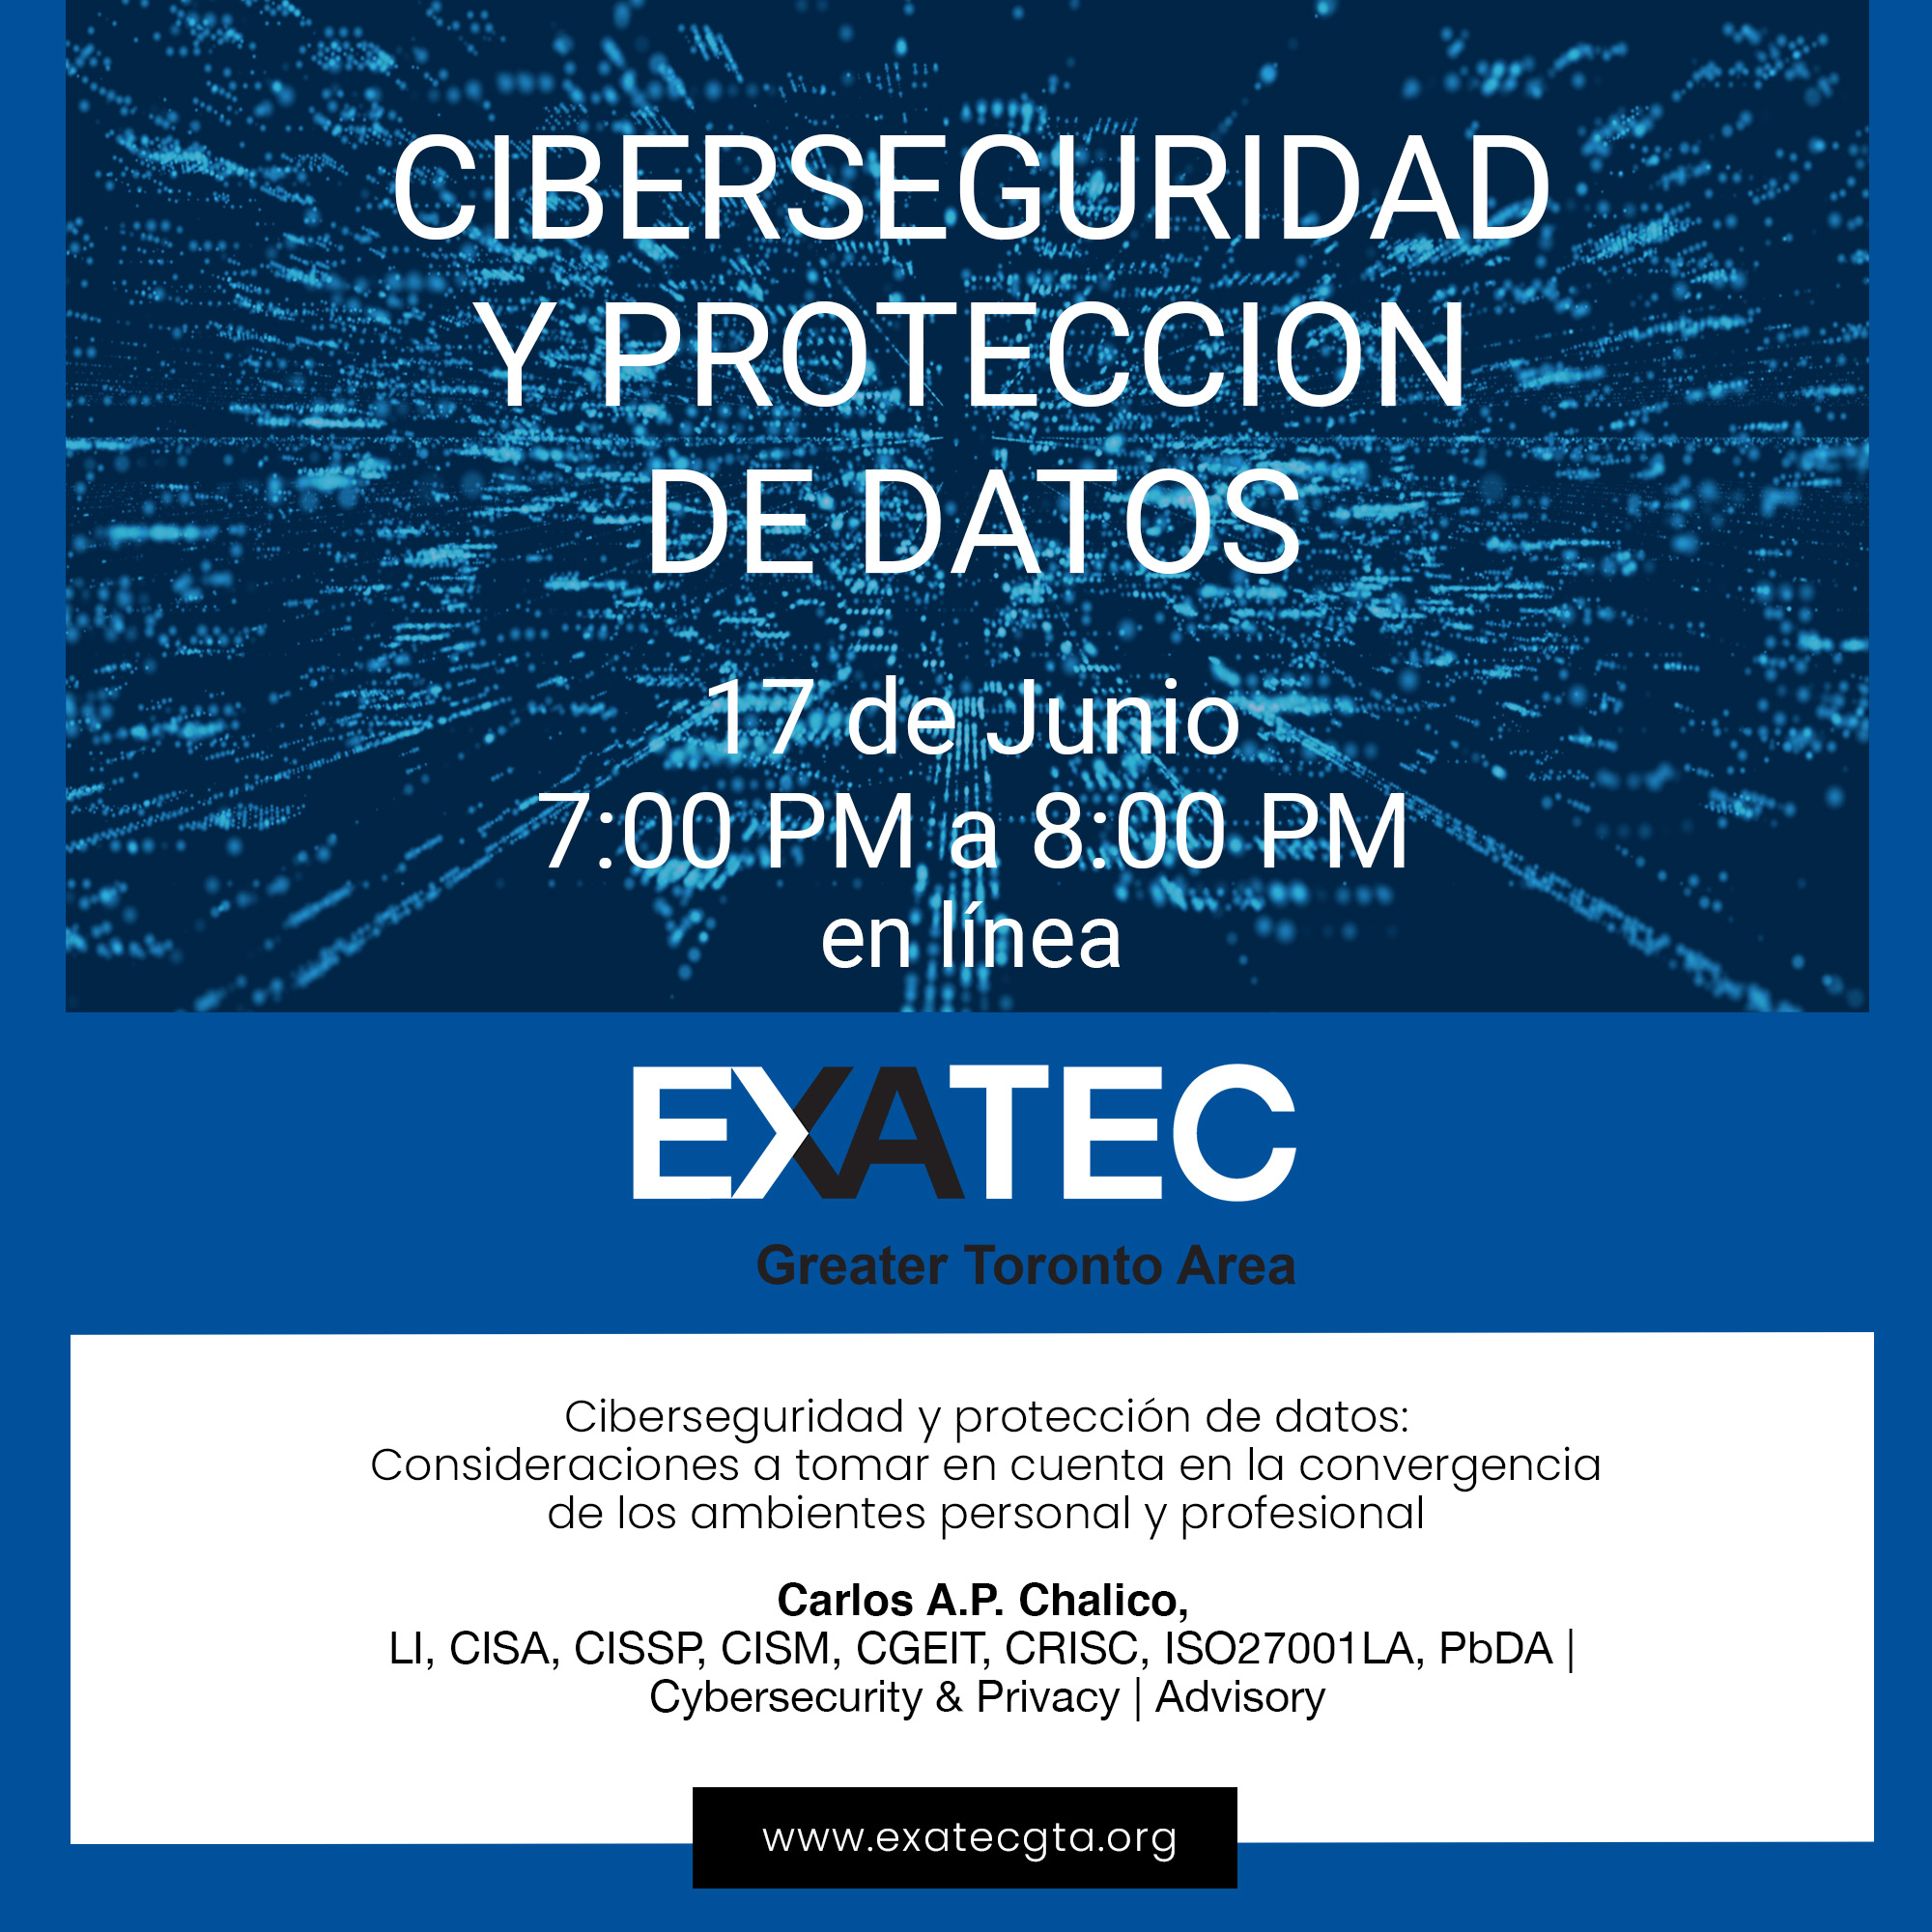 EXATEC GTA Webinar - Cybersecurity and Data Protection